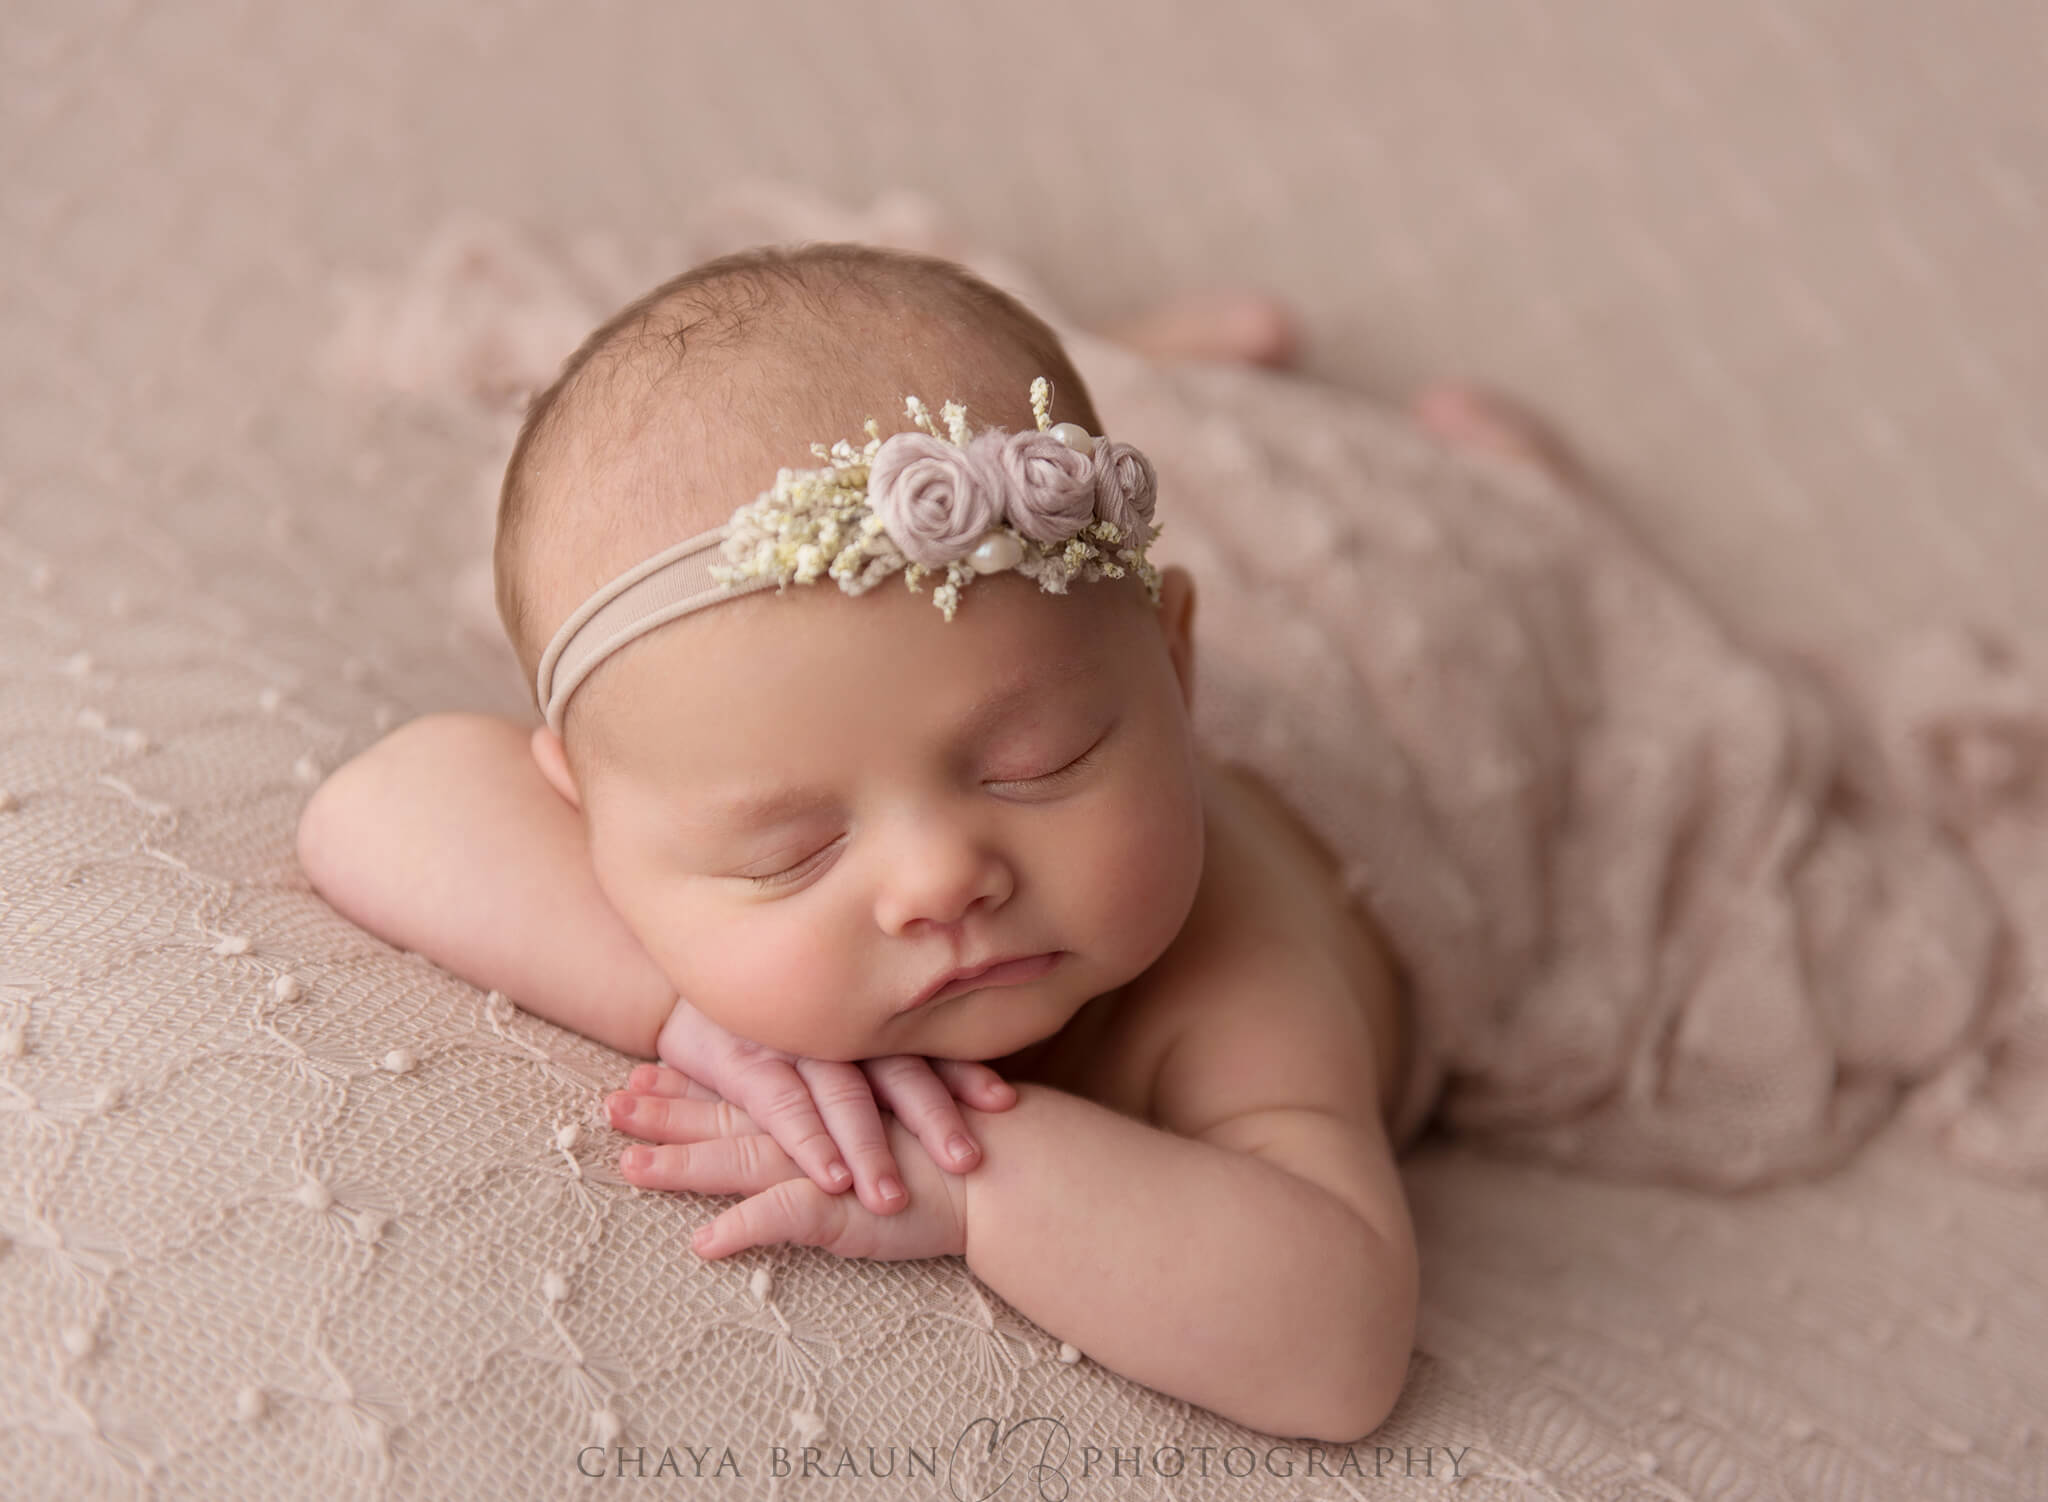 5 week old sleeping newborn baby